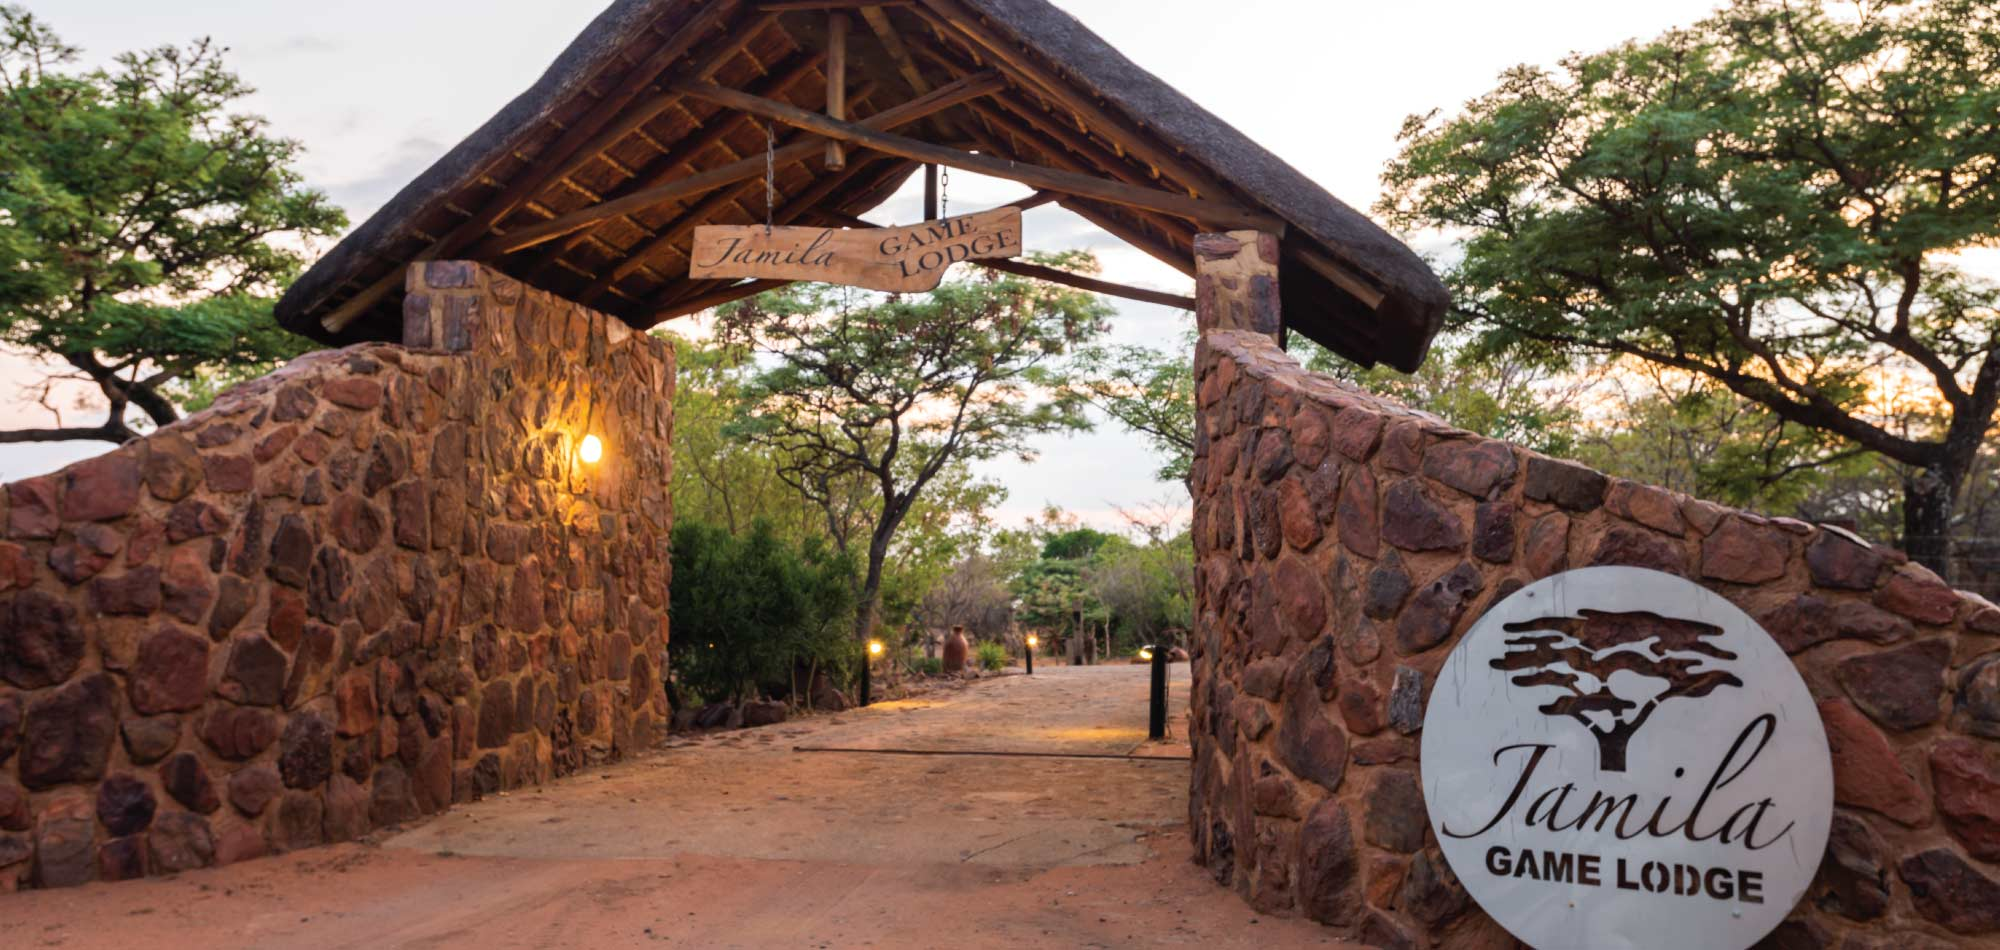 Jamila Lodge - Home Banner Entrance